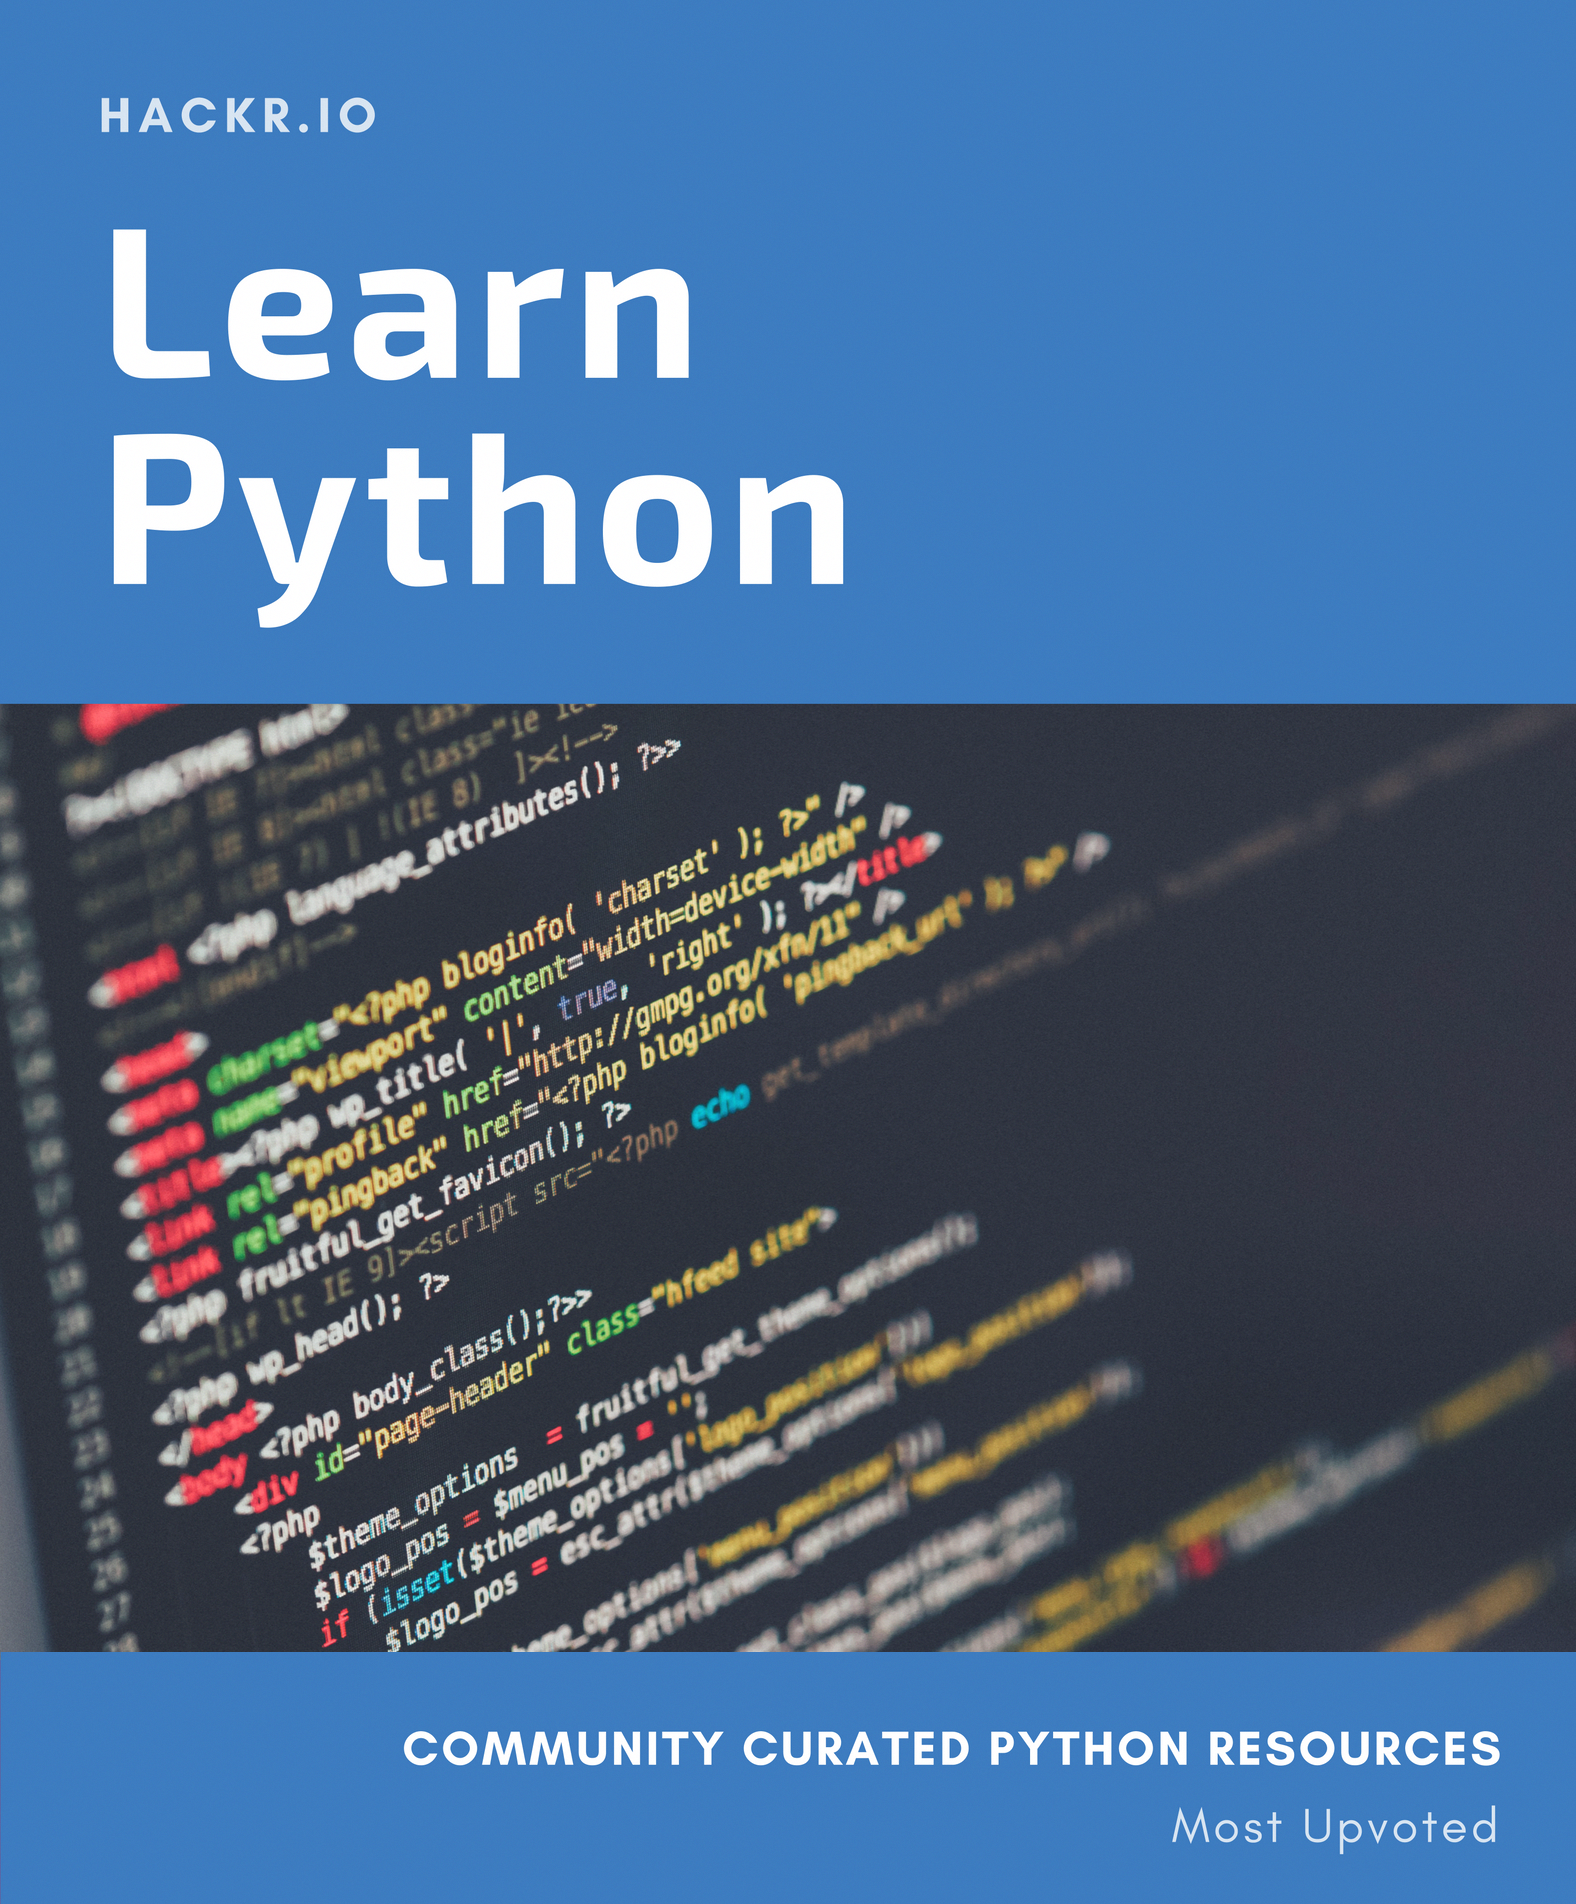 learn python online from the best python tutorials submitted & voted